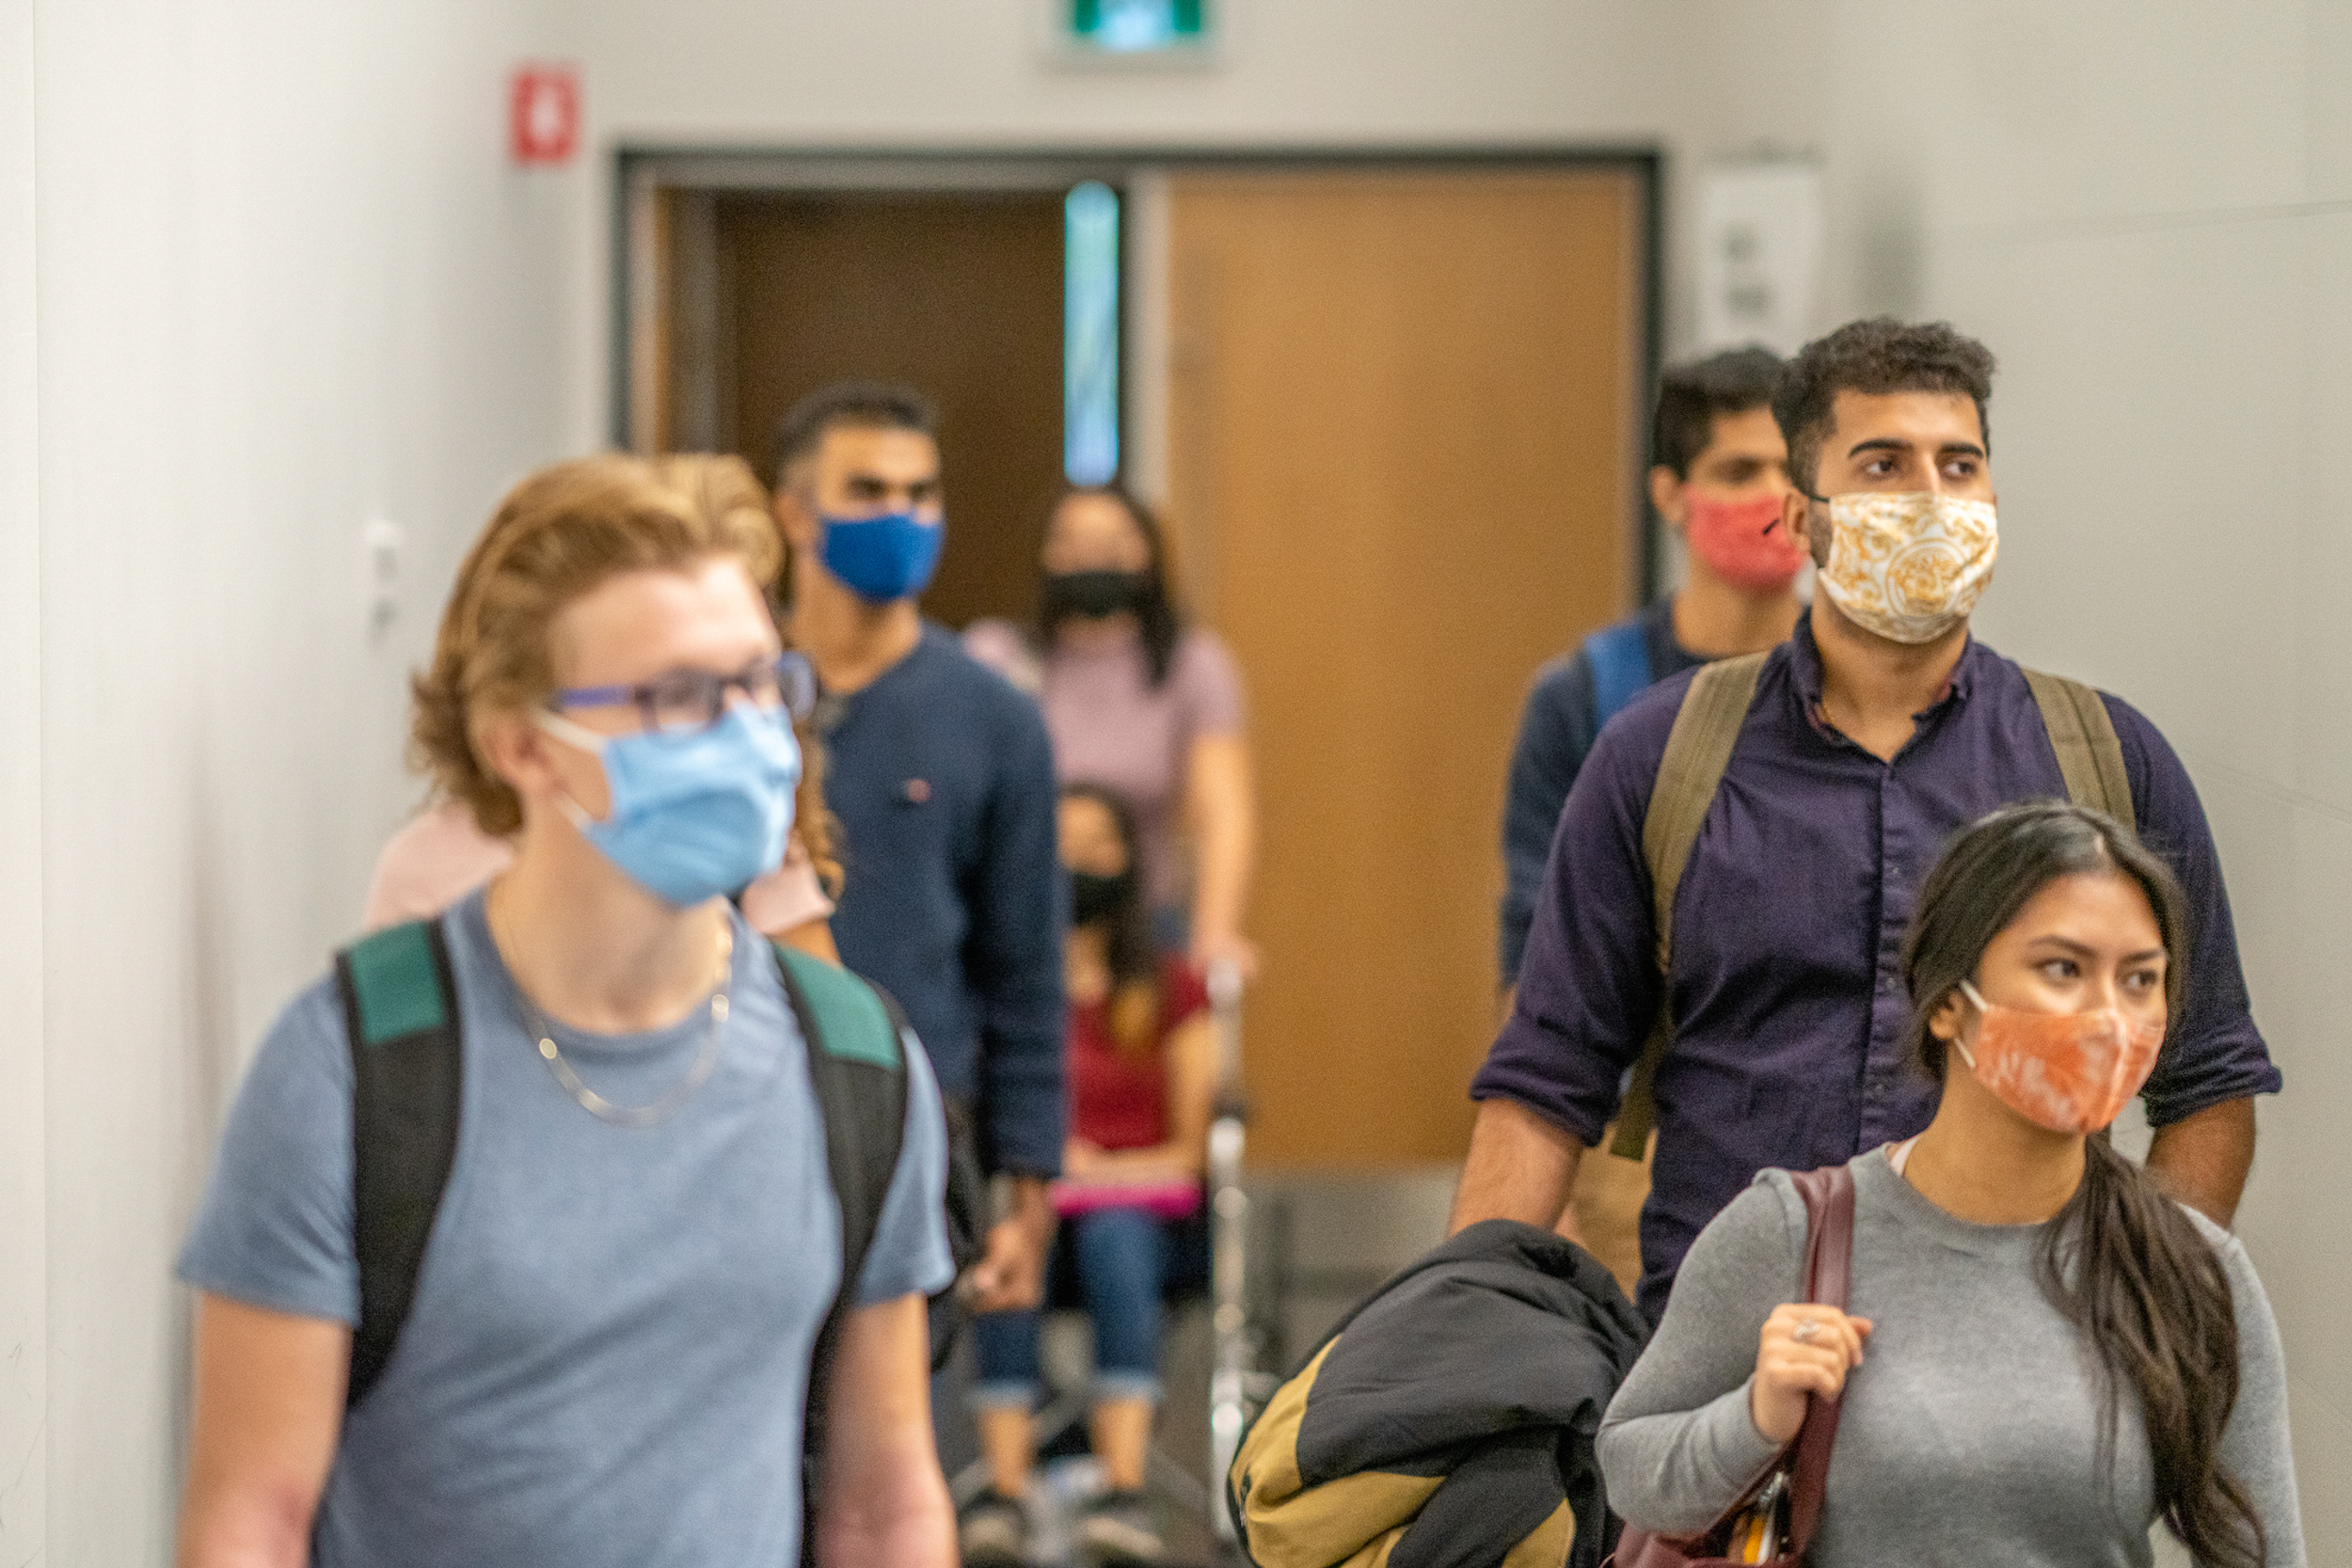 Students filing into class while wearing protective face masks.